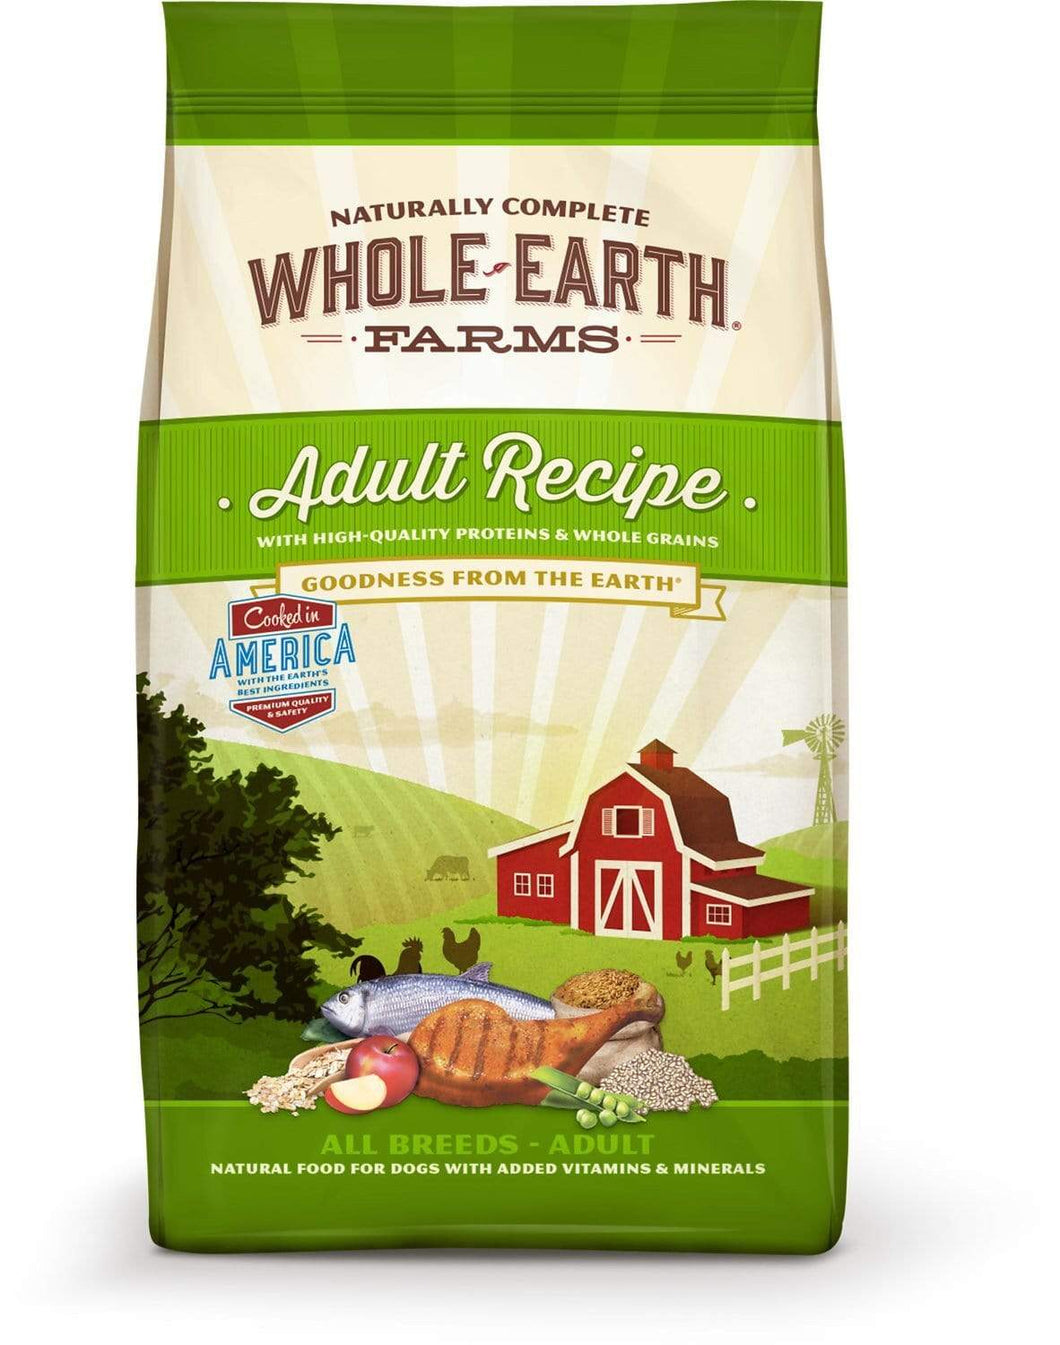 Whole Earth Farms Whole Earth Farms Adult Recipe